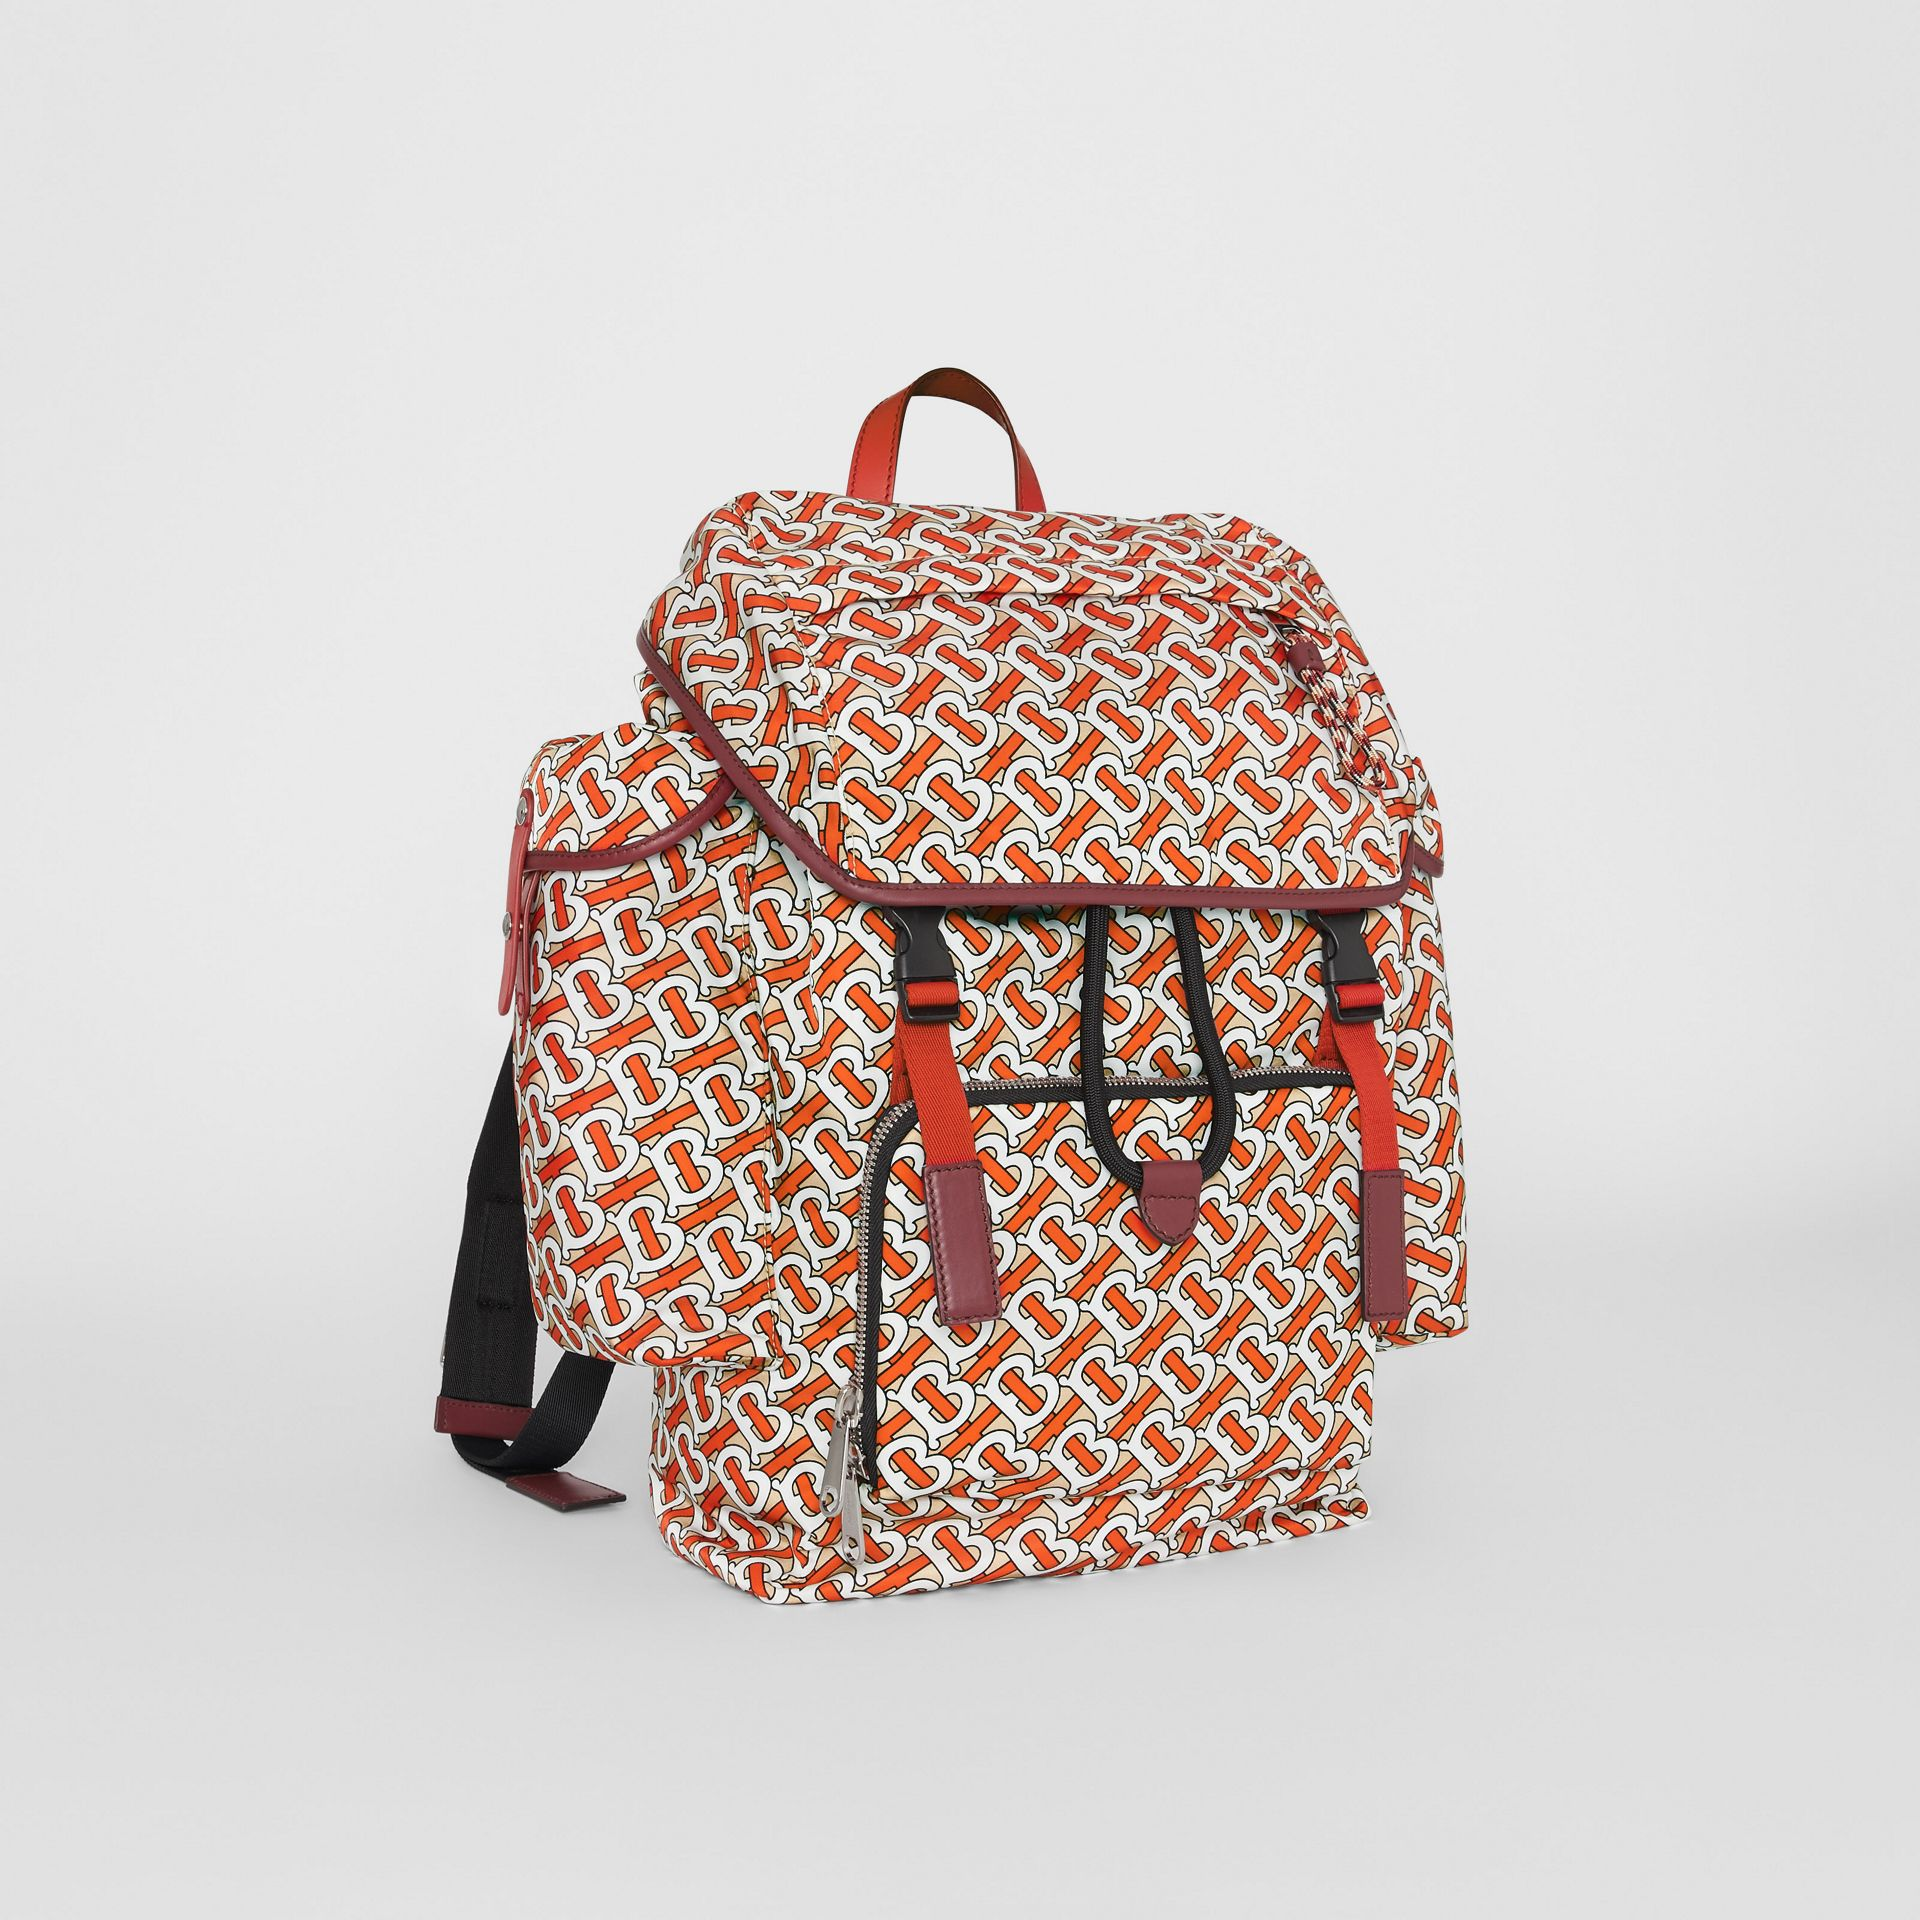 Medium Leather Trim Monogram Print Backpack in Vermilion - Men | Burberry United Kingdom - gallery image 6